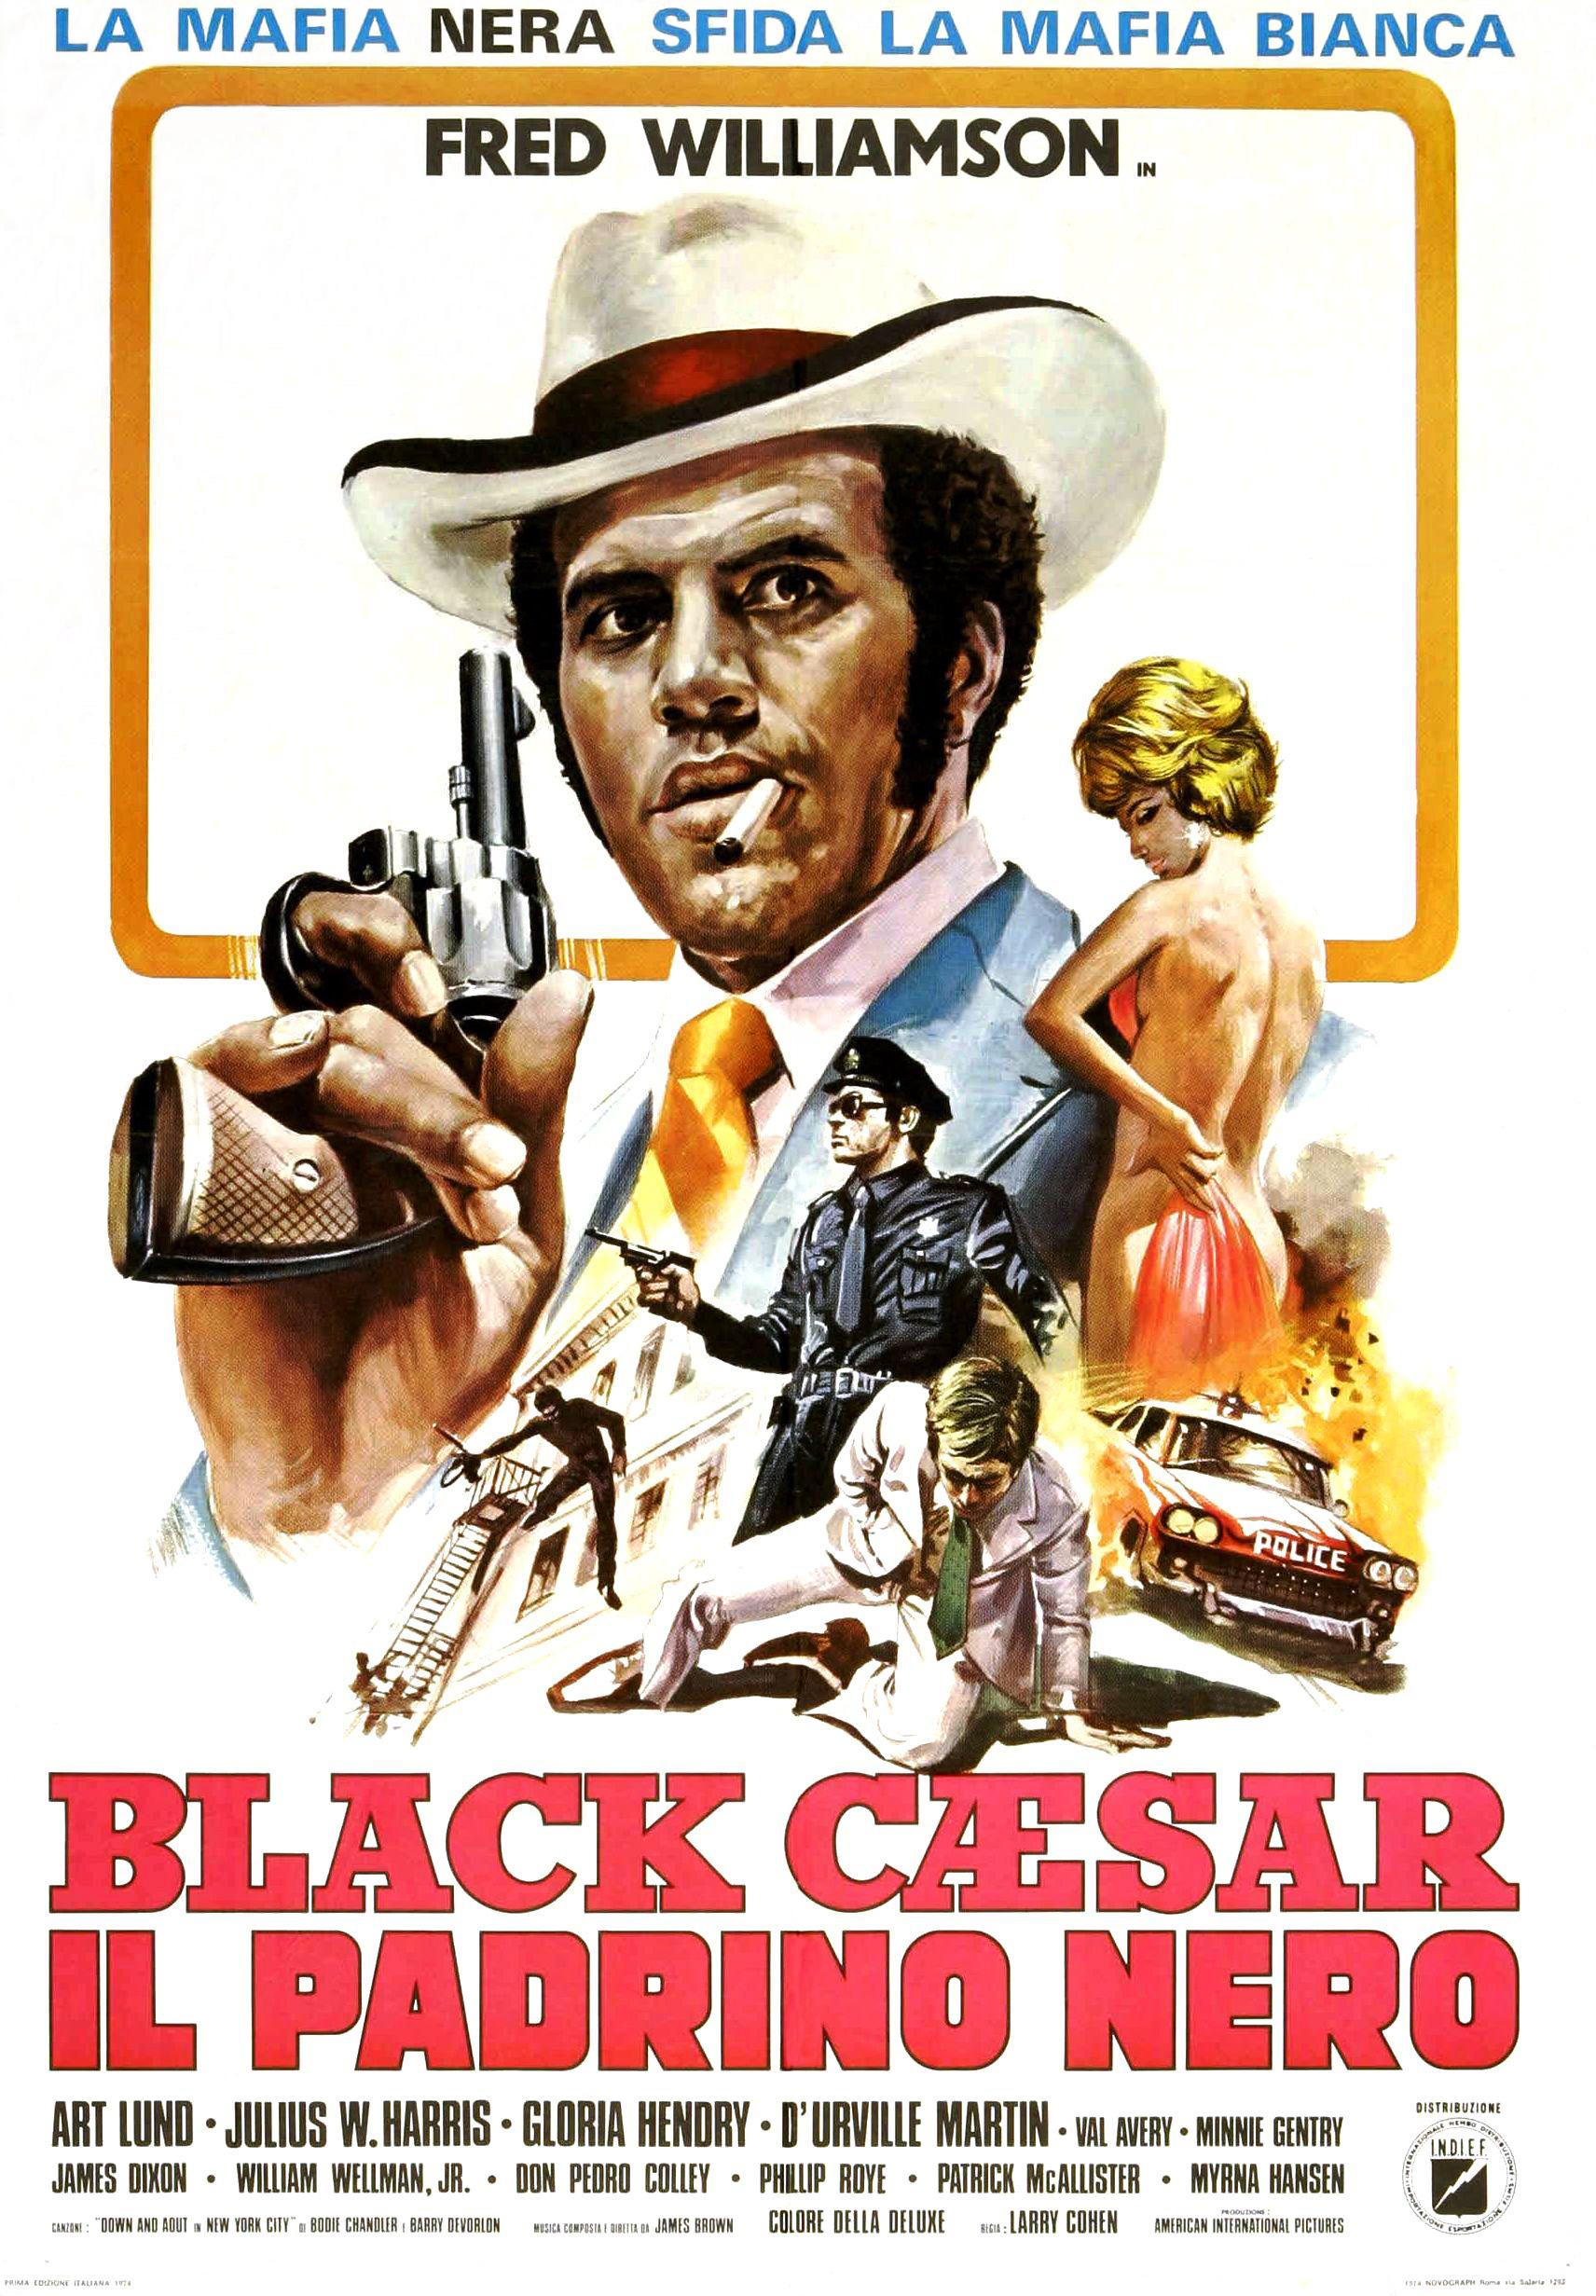 Don Pedro Colley Movies And Tv Shows